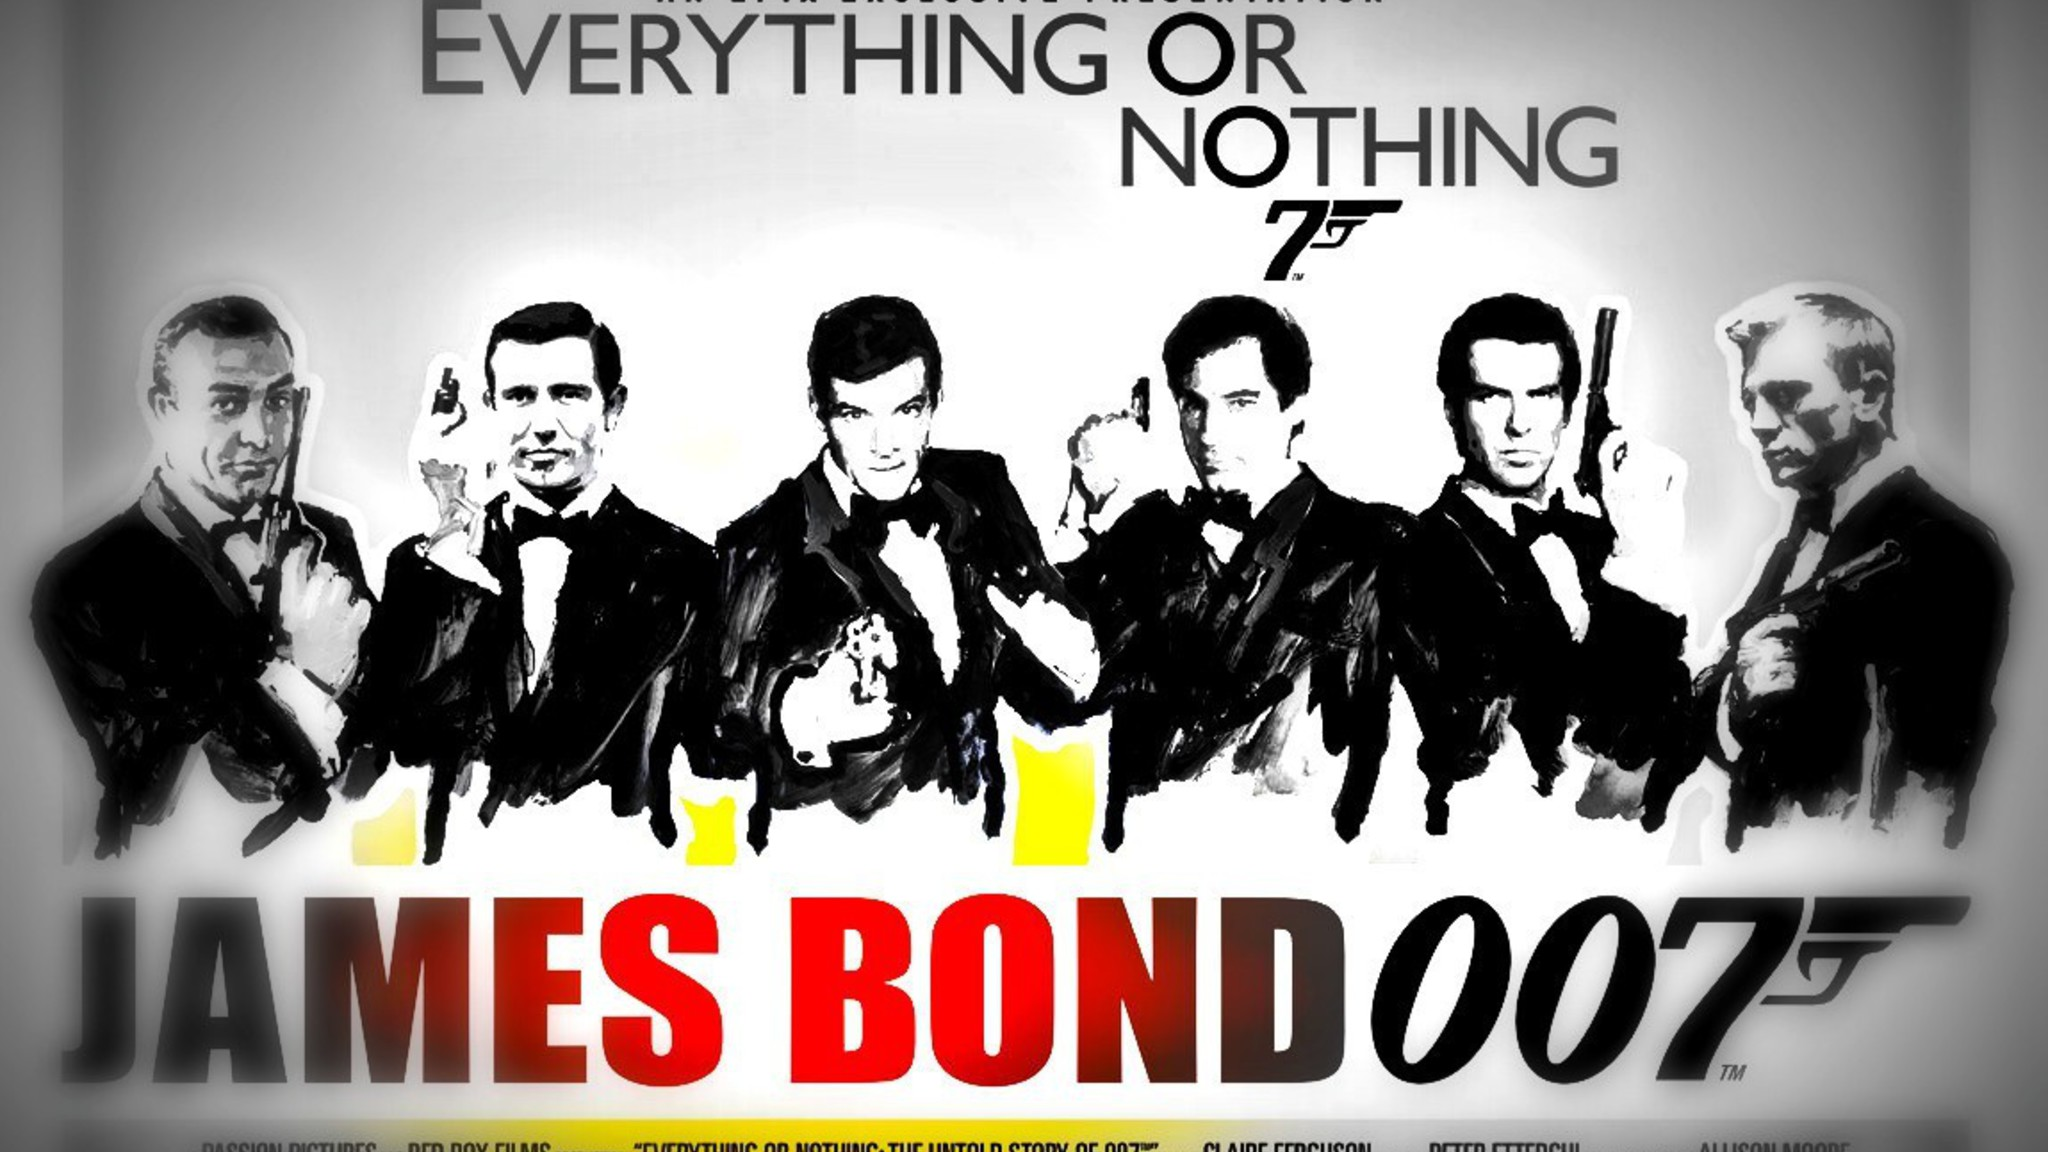 james bond wallpaper | allwallpaper.in #2356 | pc | en